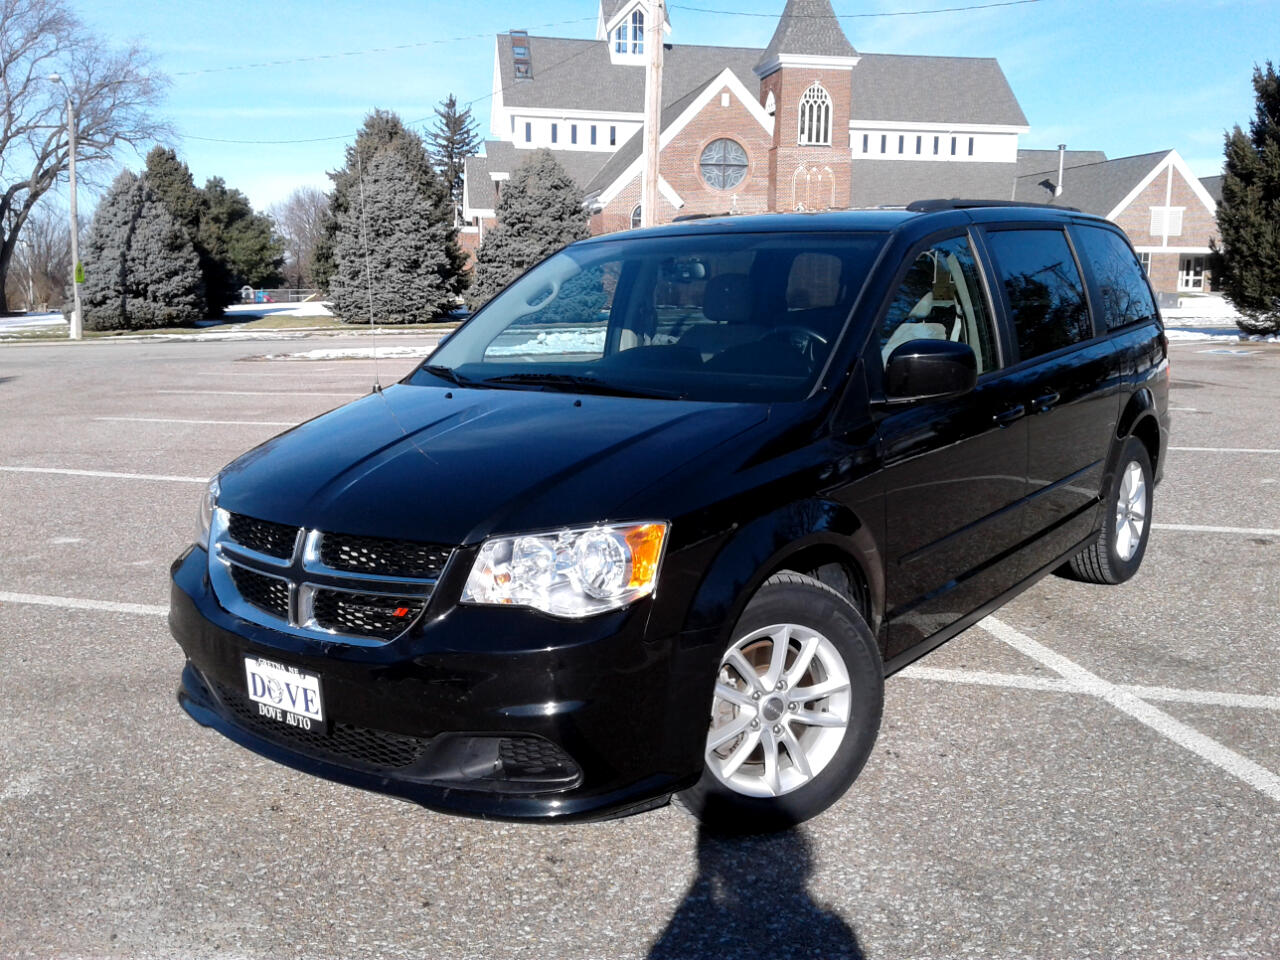 2016 Dodge Grand Caravan 4dr Wgn SXT